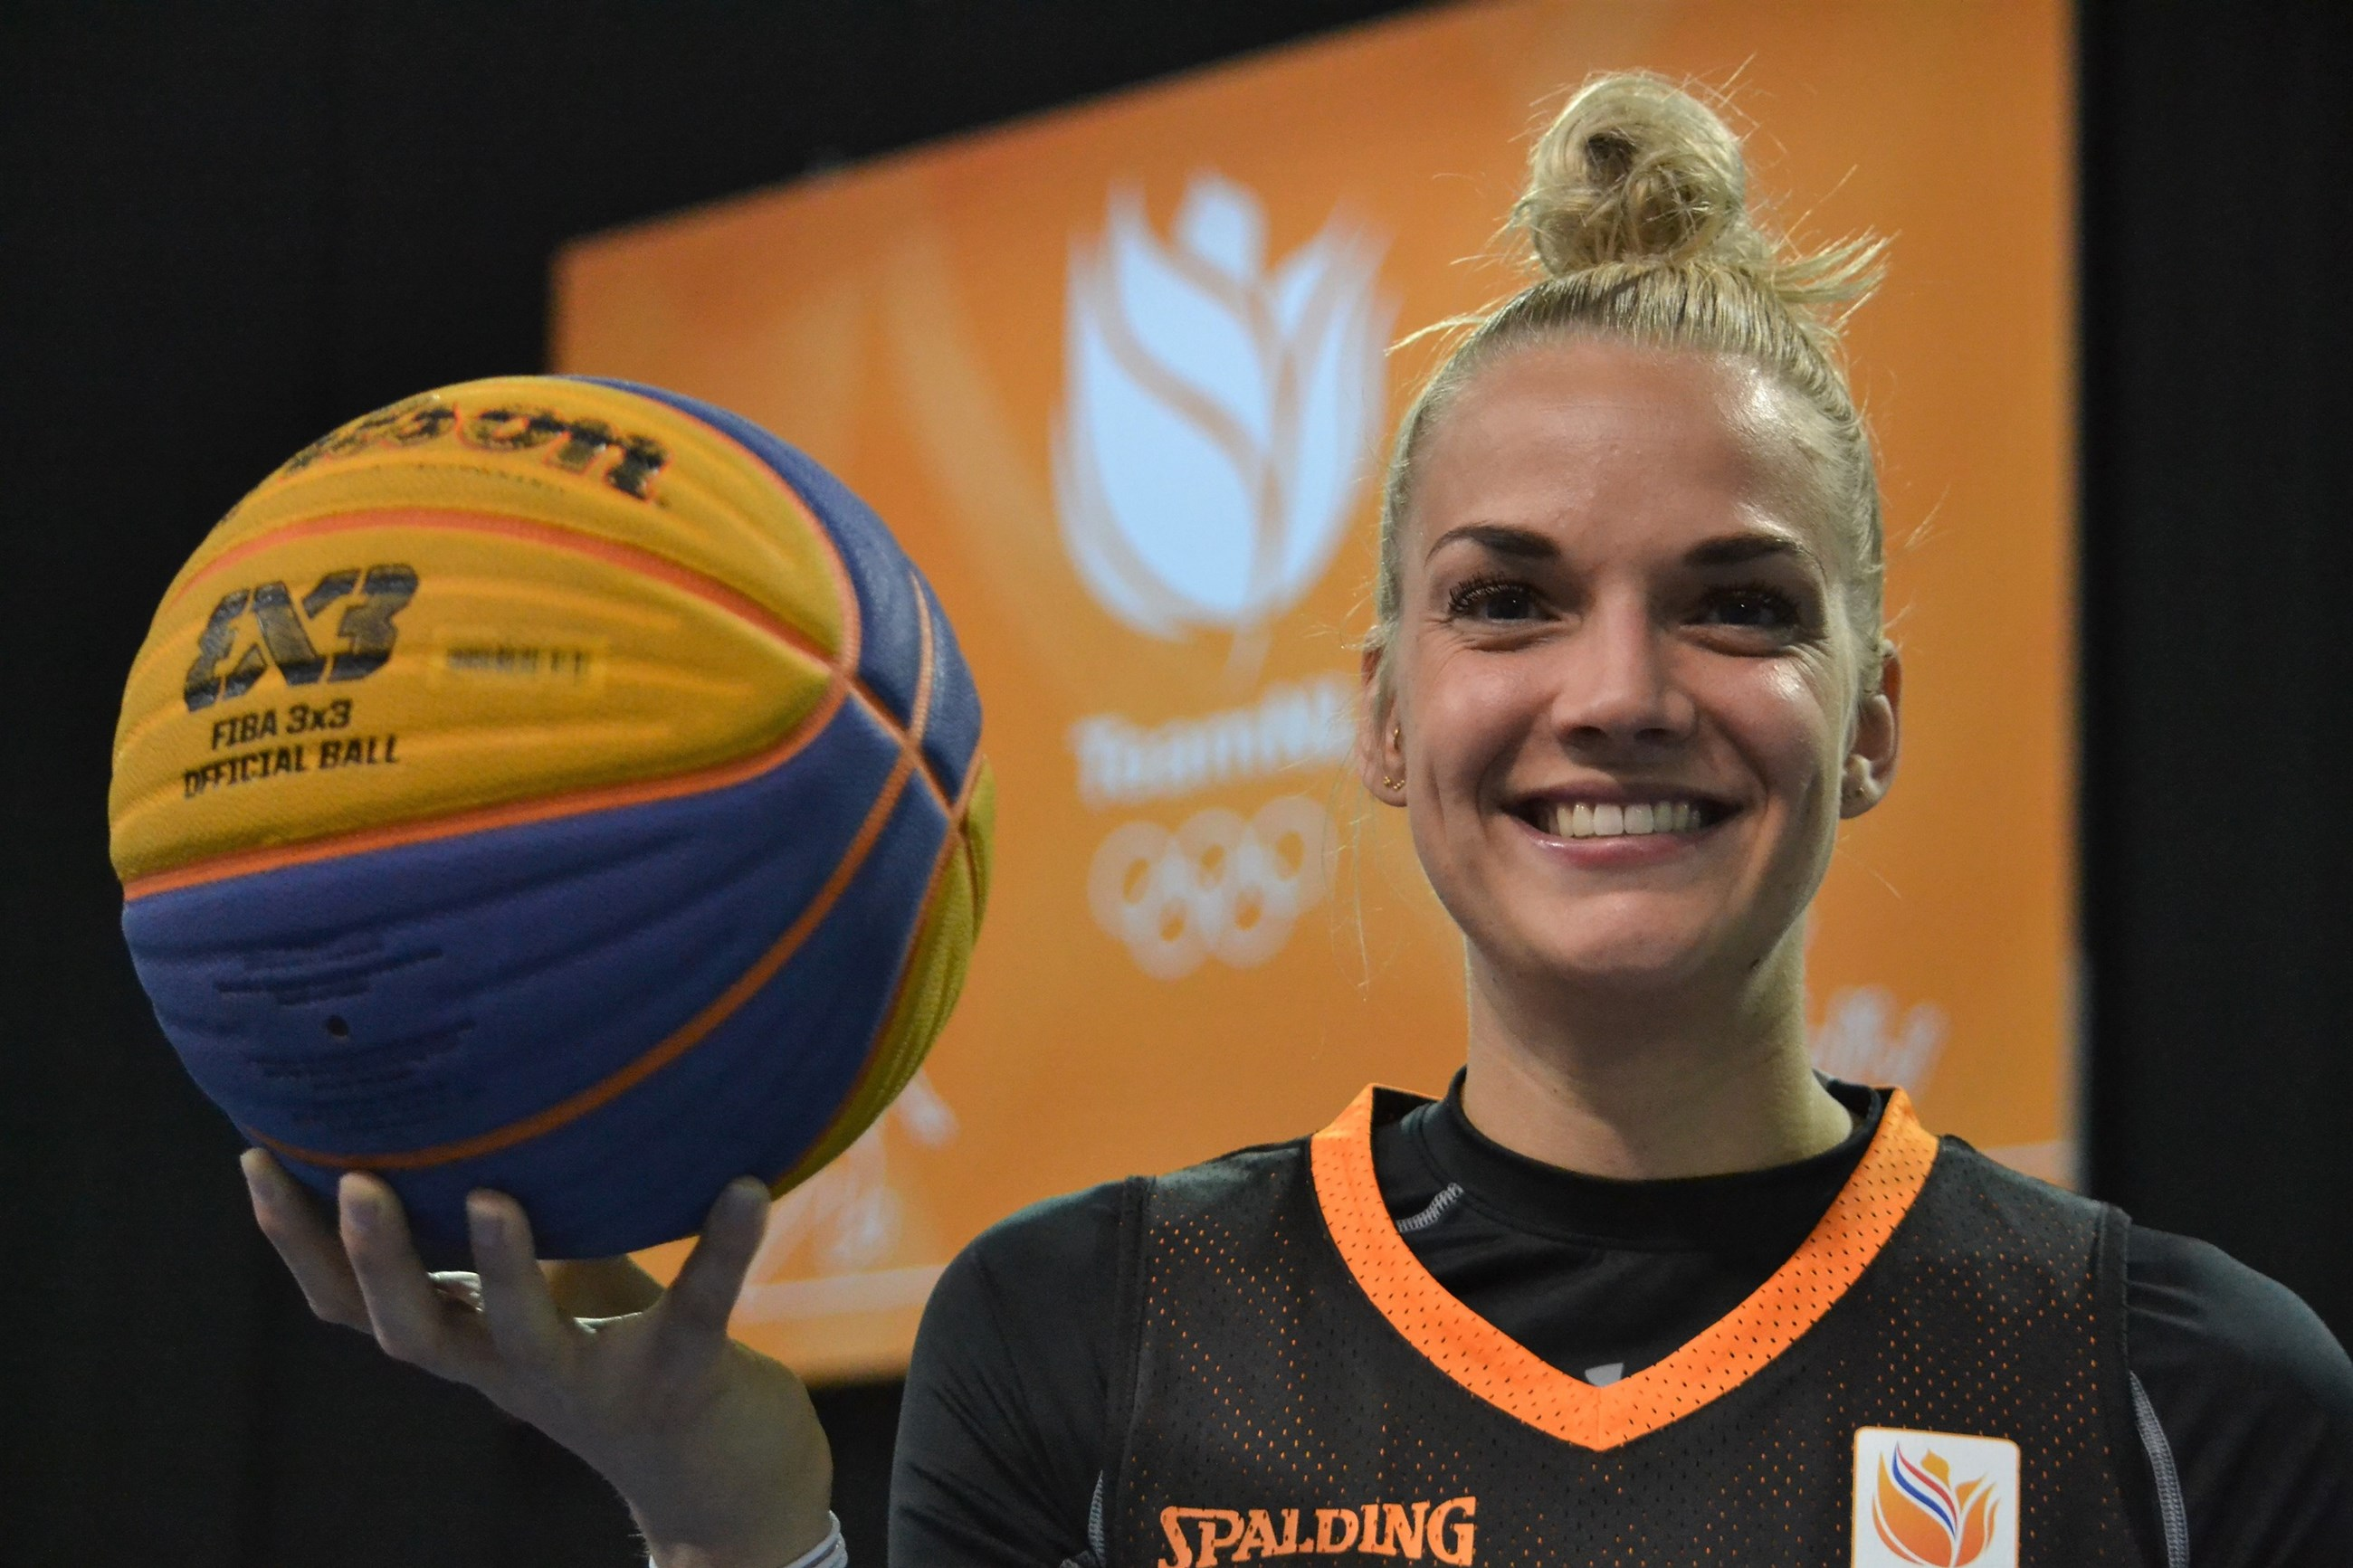 Jill Bettonvil over basketbal en hemelse kwarkbroodjes